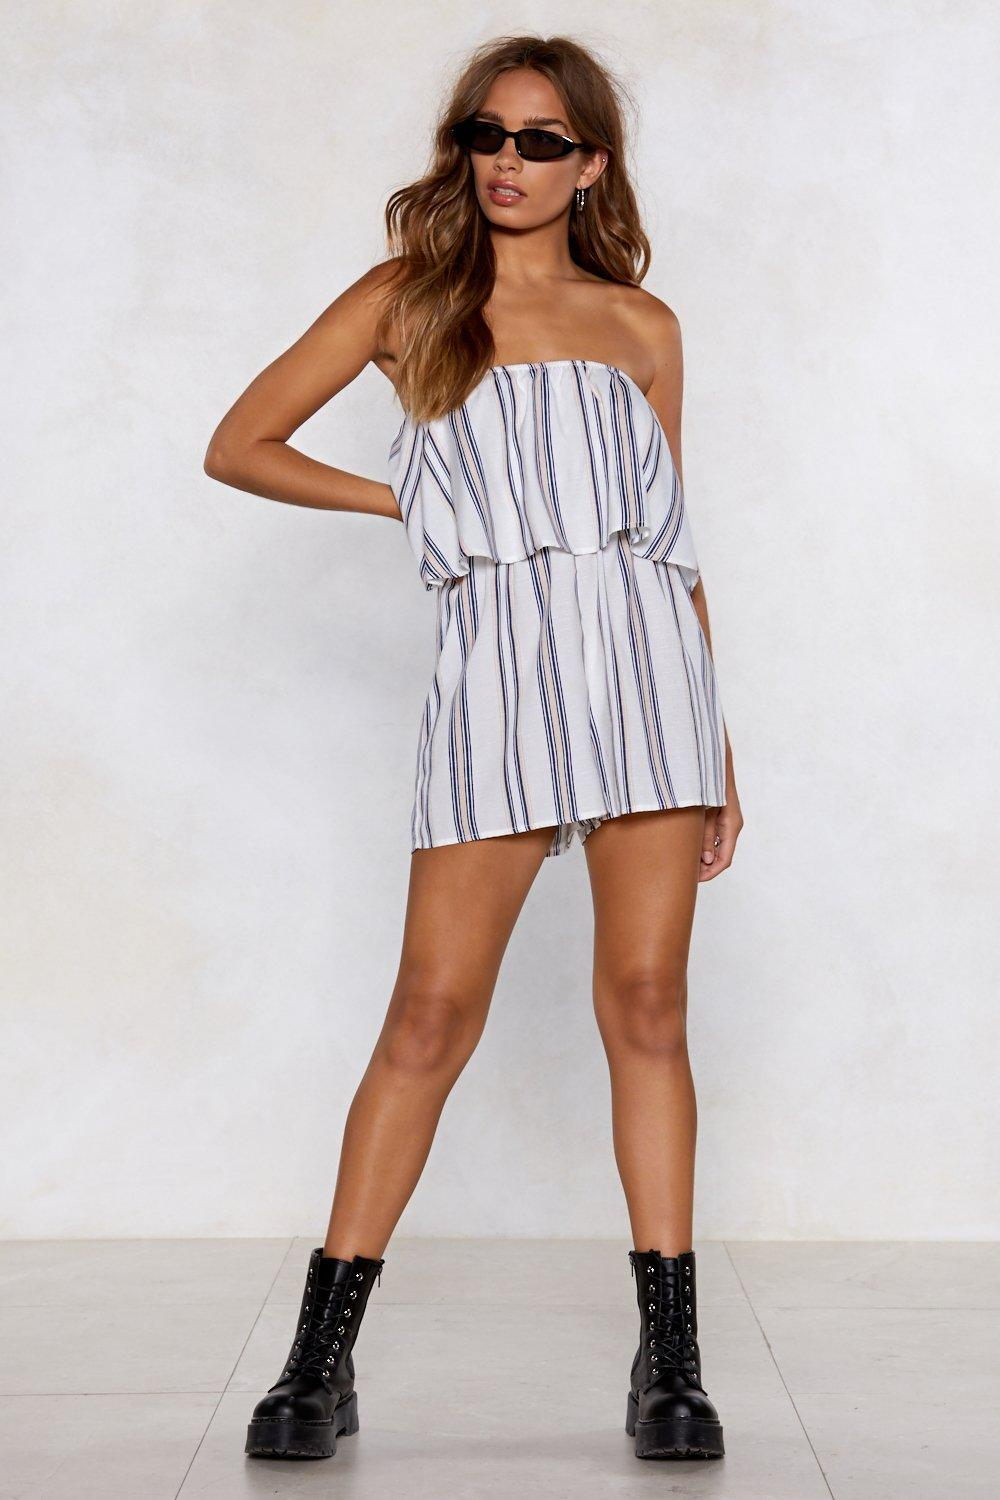 0227943a31cb Time for Plan Bandeau Striped Romper